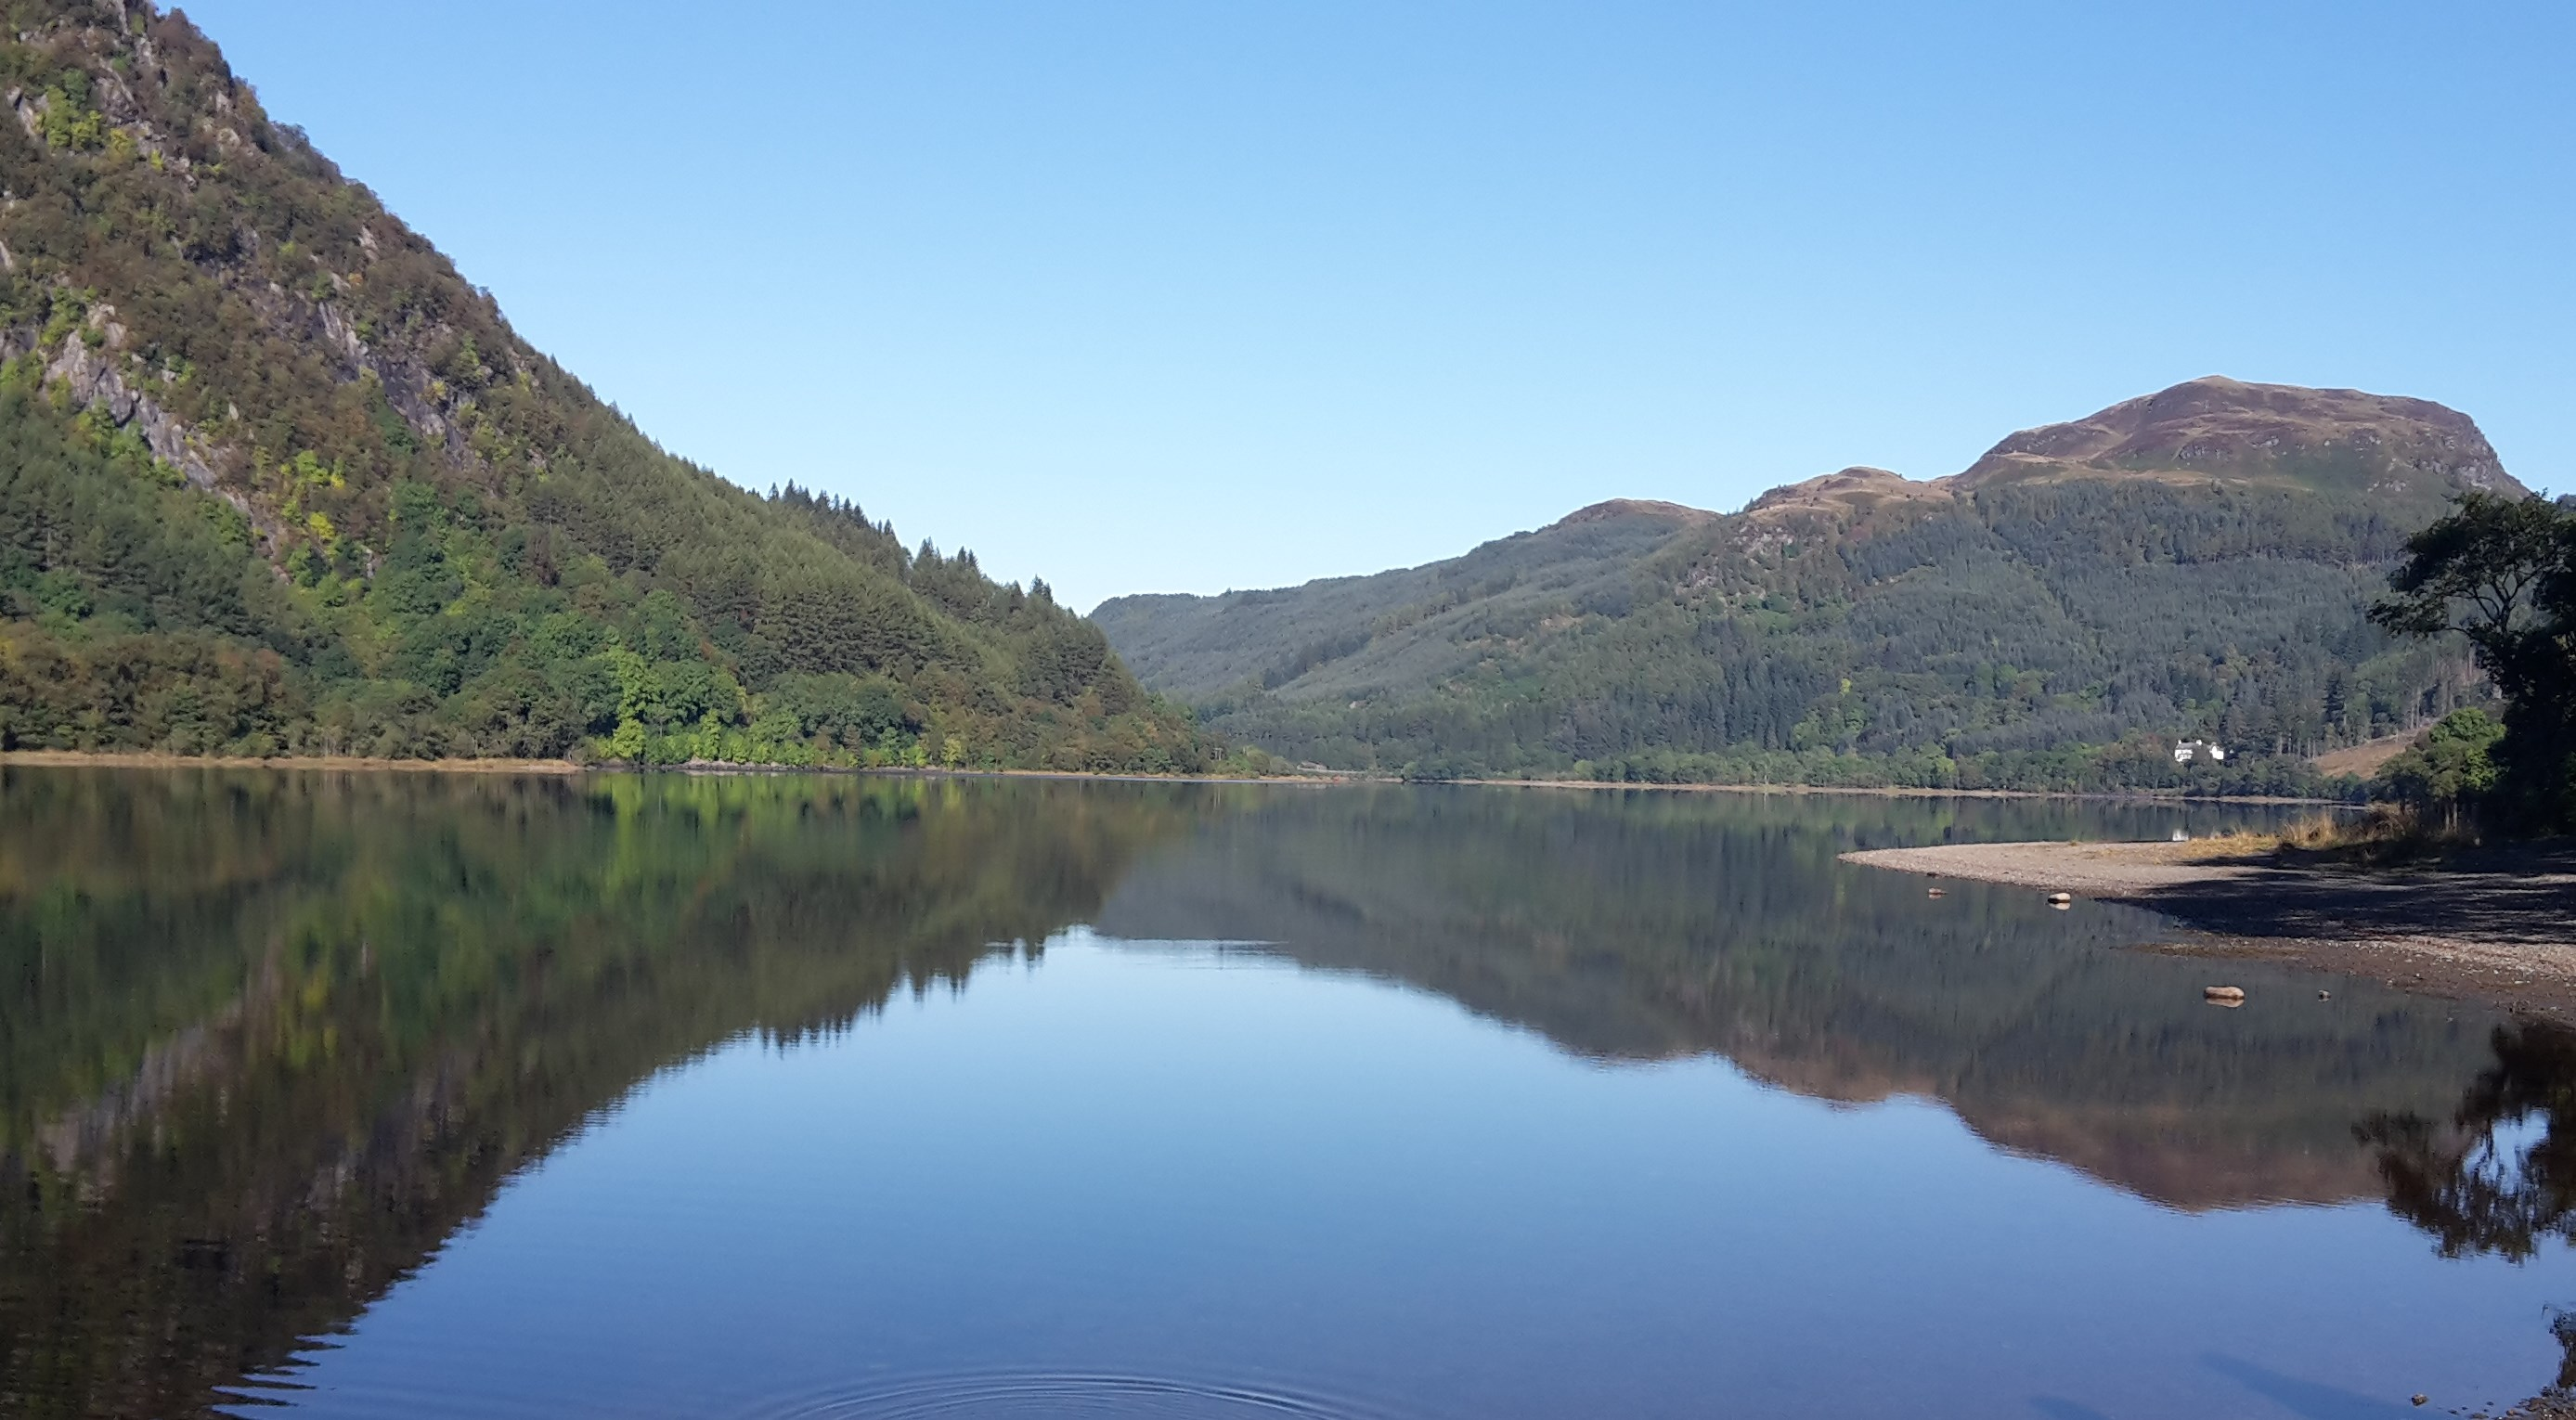 A Picture Paints a Thousand Words - Loch Lomond & Trossachs National Park